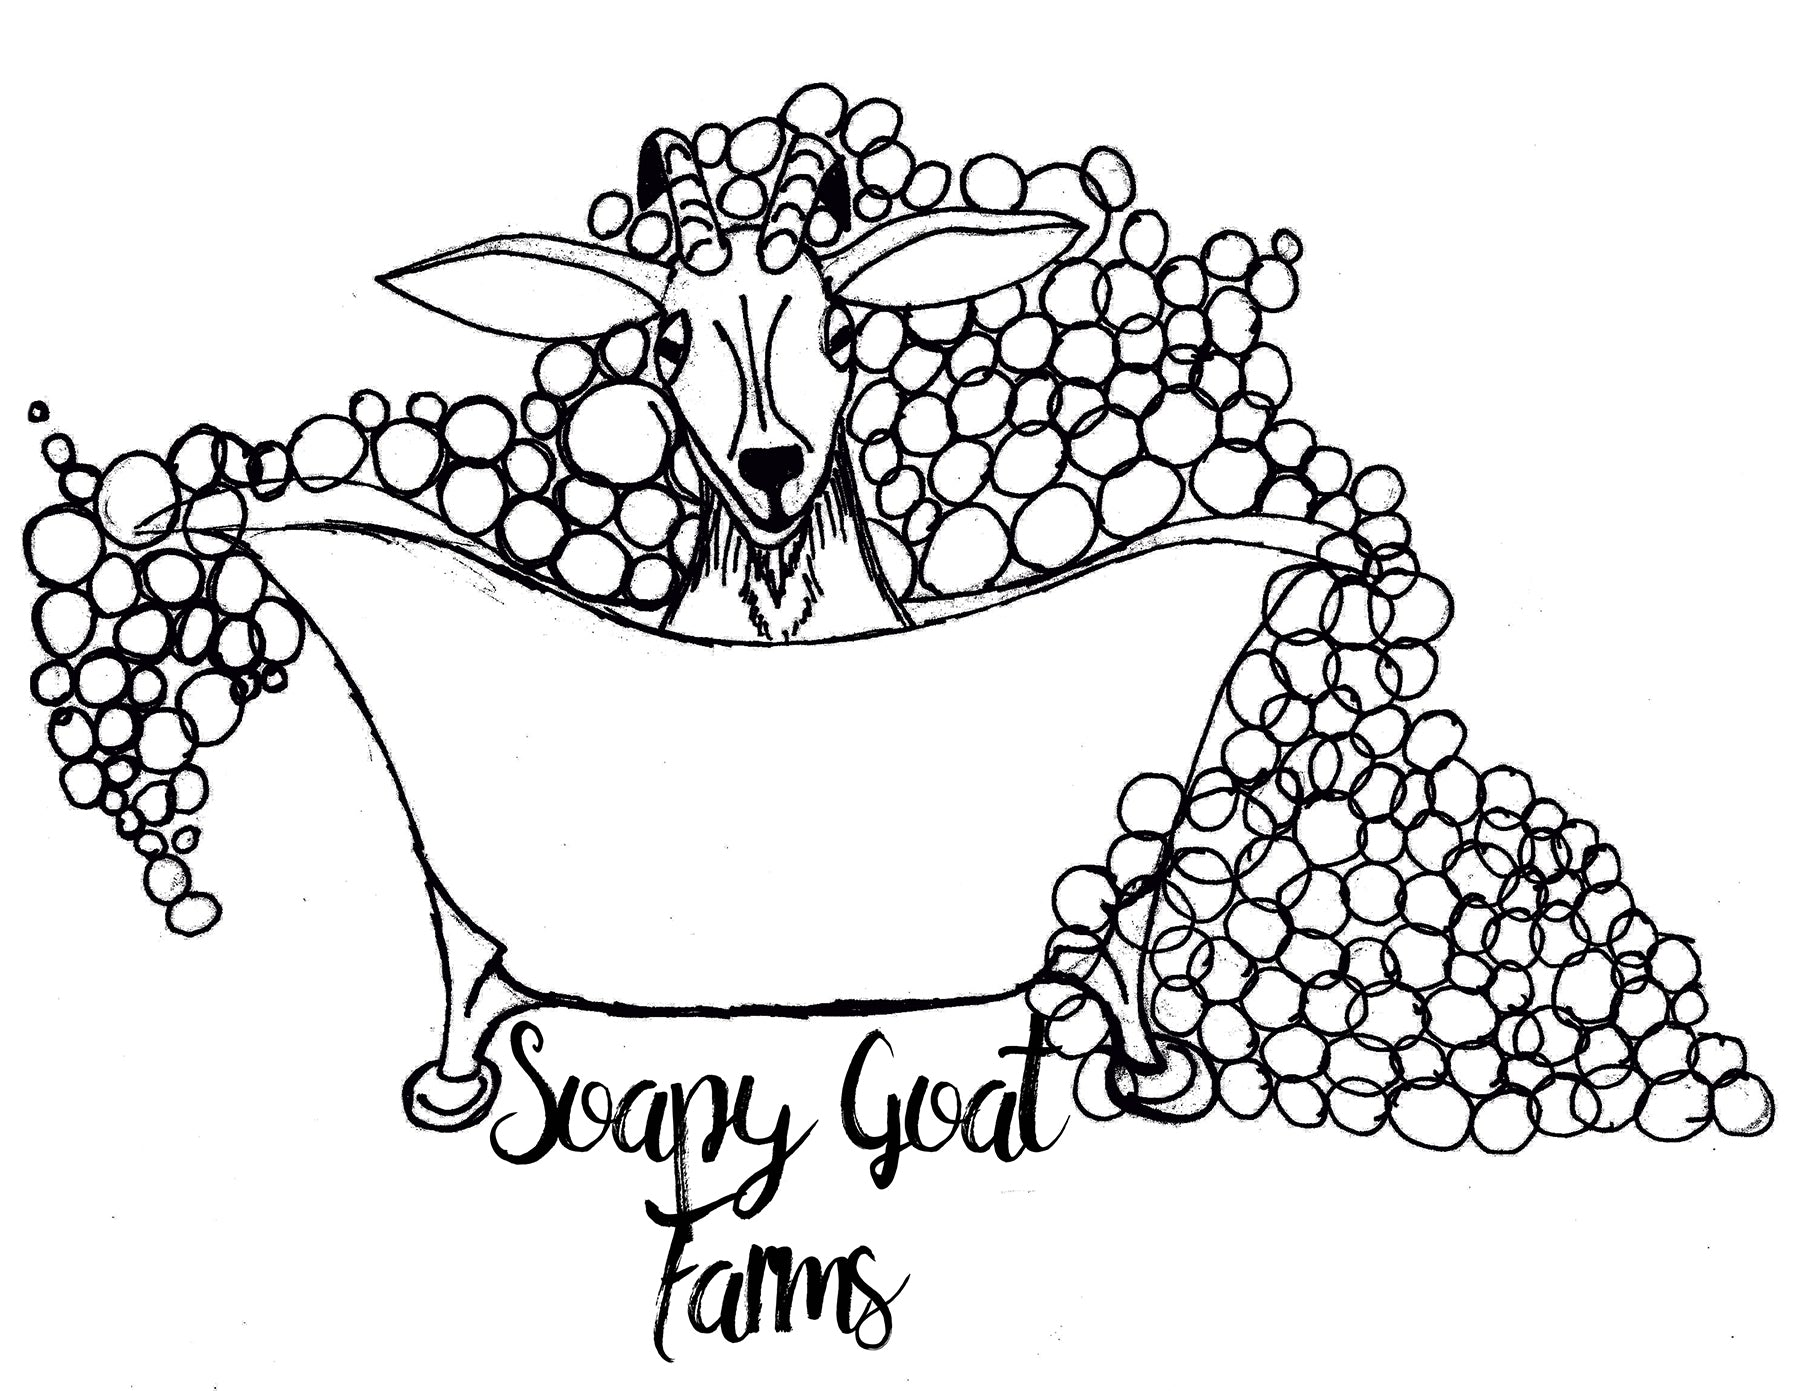 Soapy Goat Farms